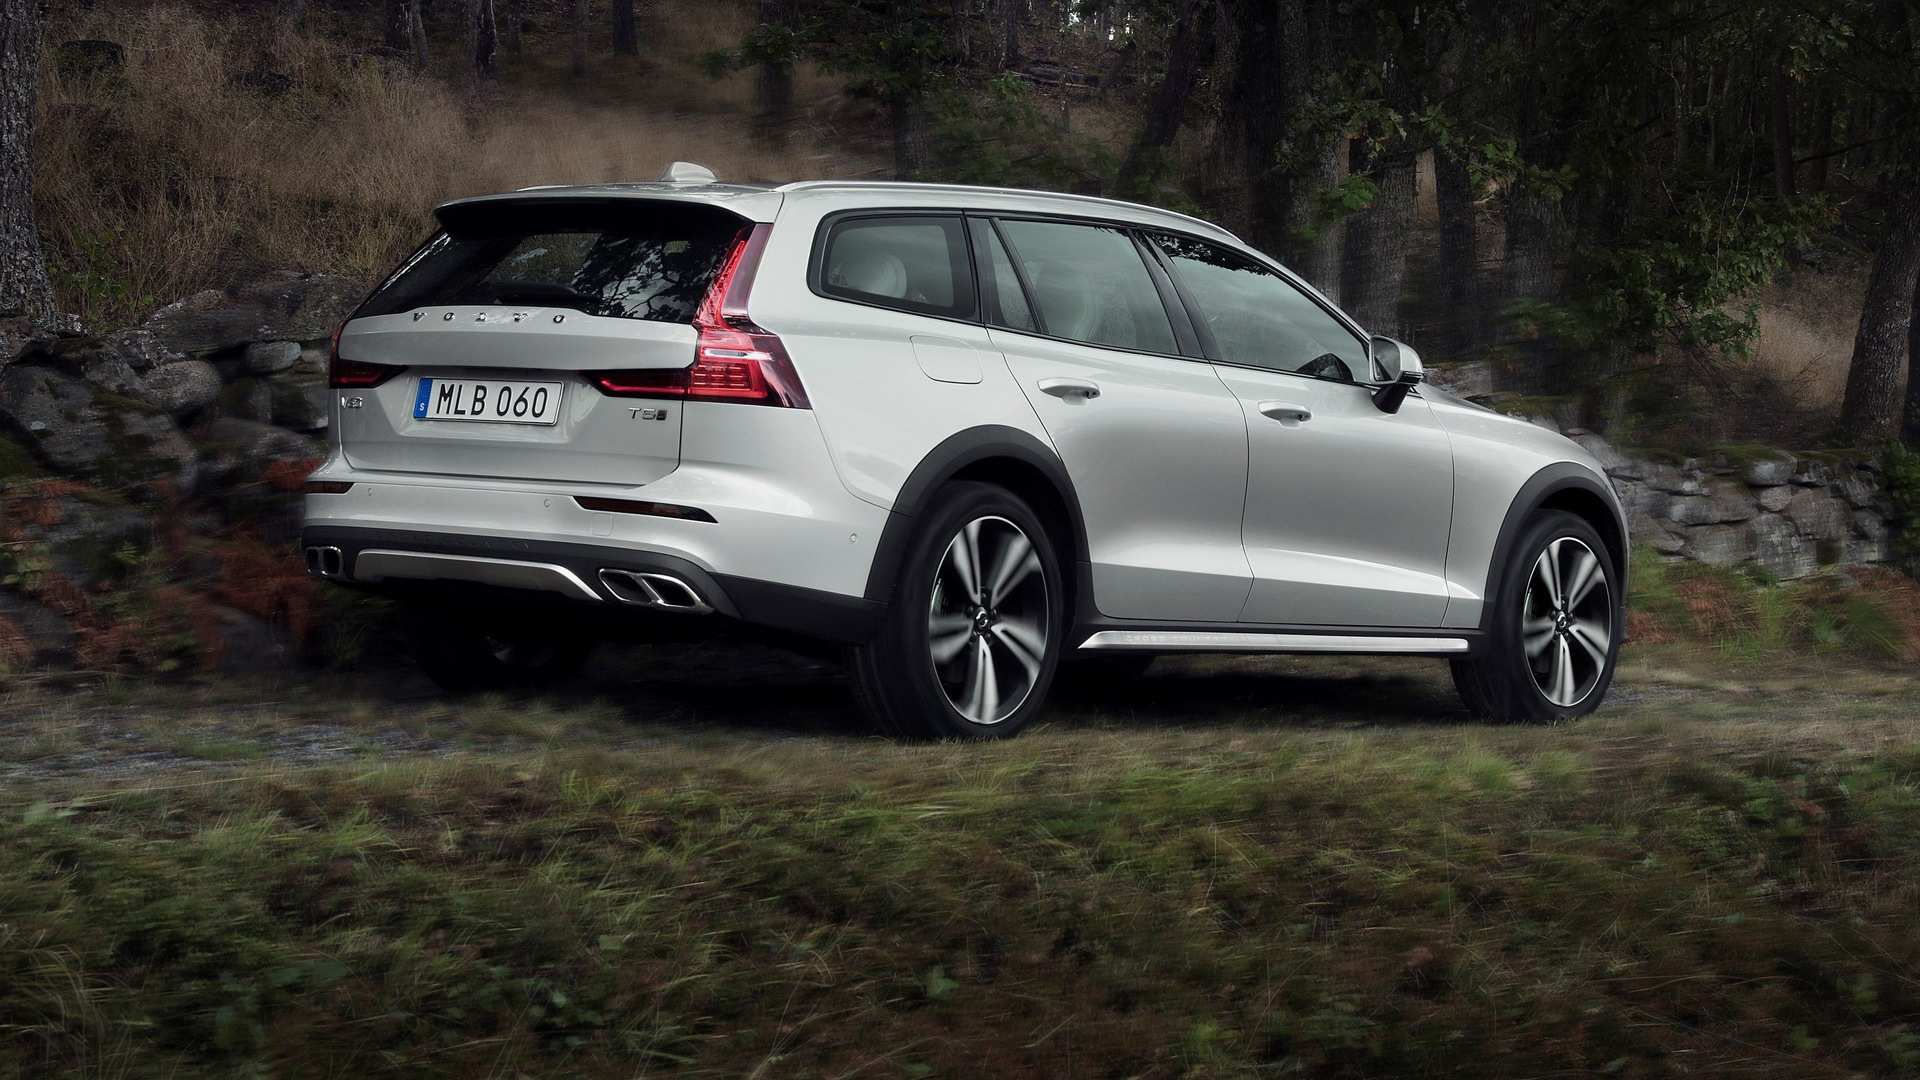 17 Gallery of 2019 Volvo V60 Cross Country Specs for 2019 Volvo V60 Cross Country